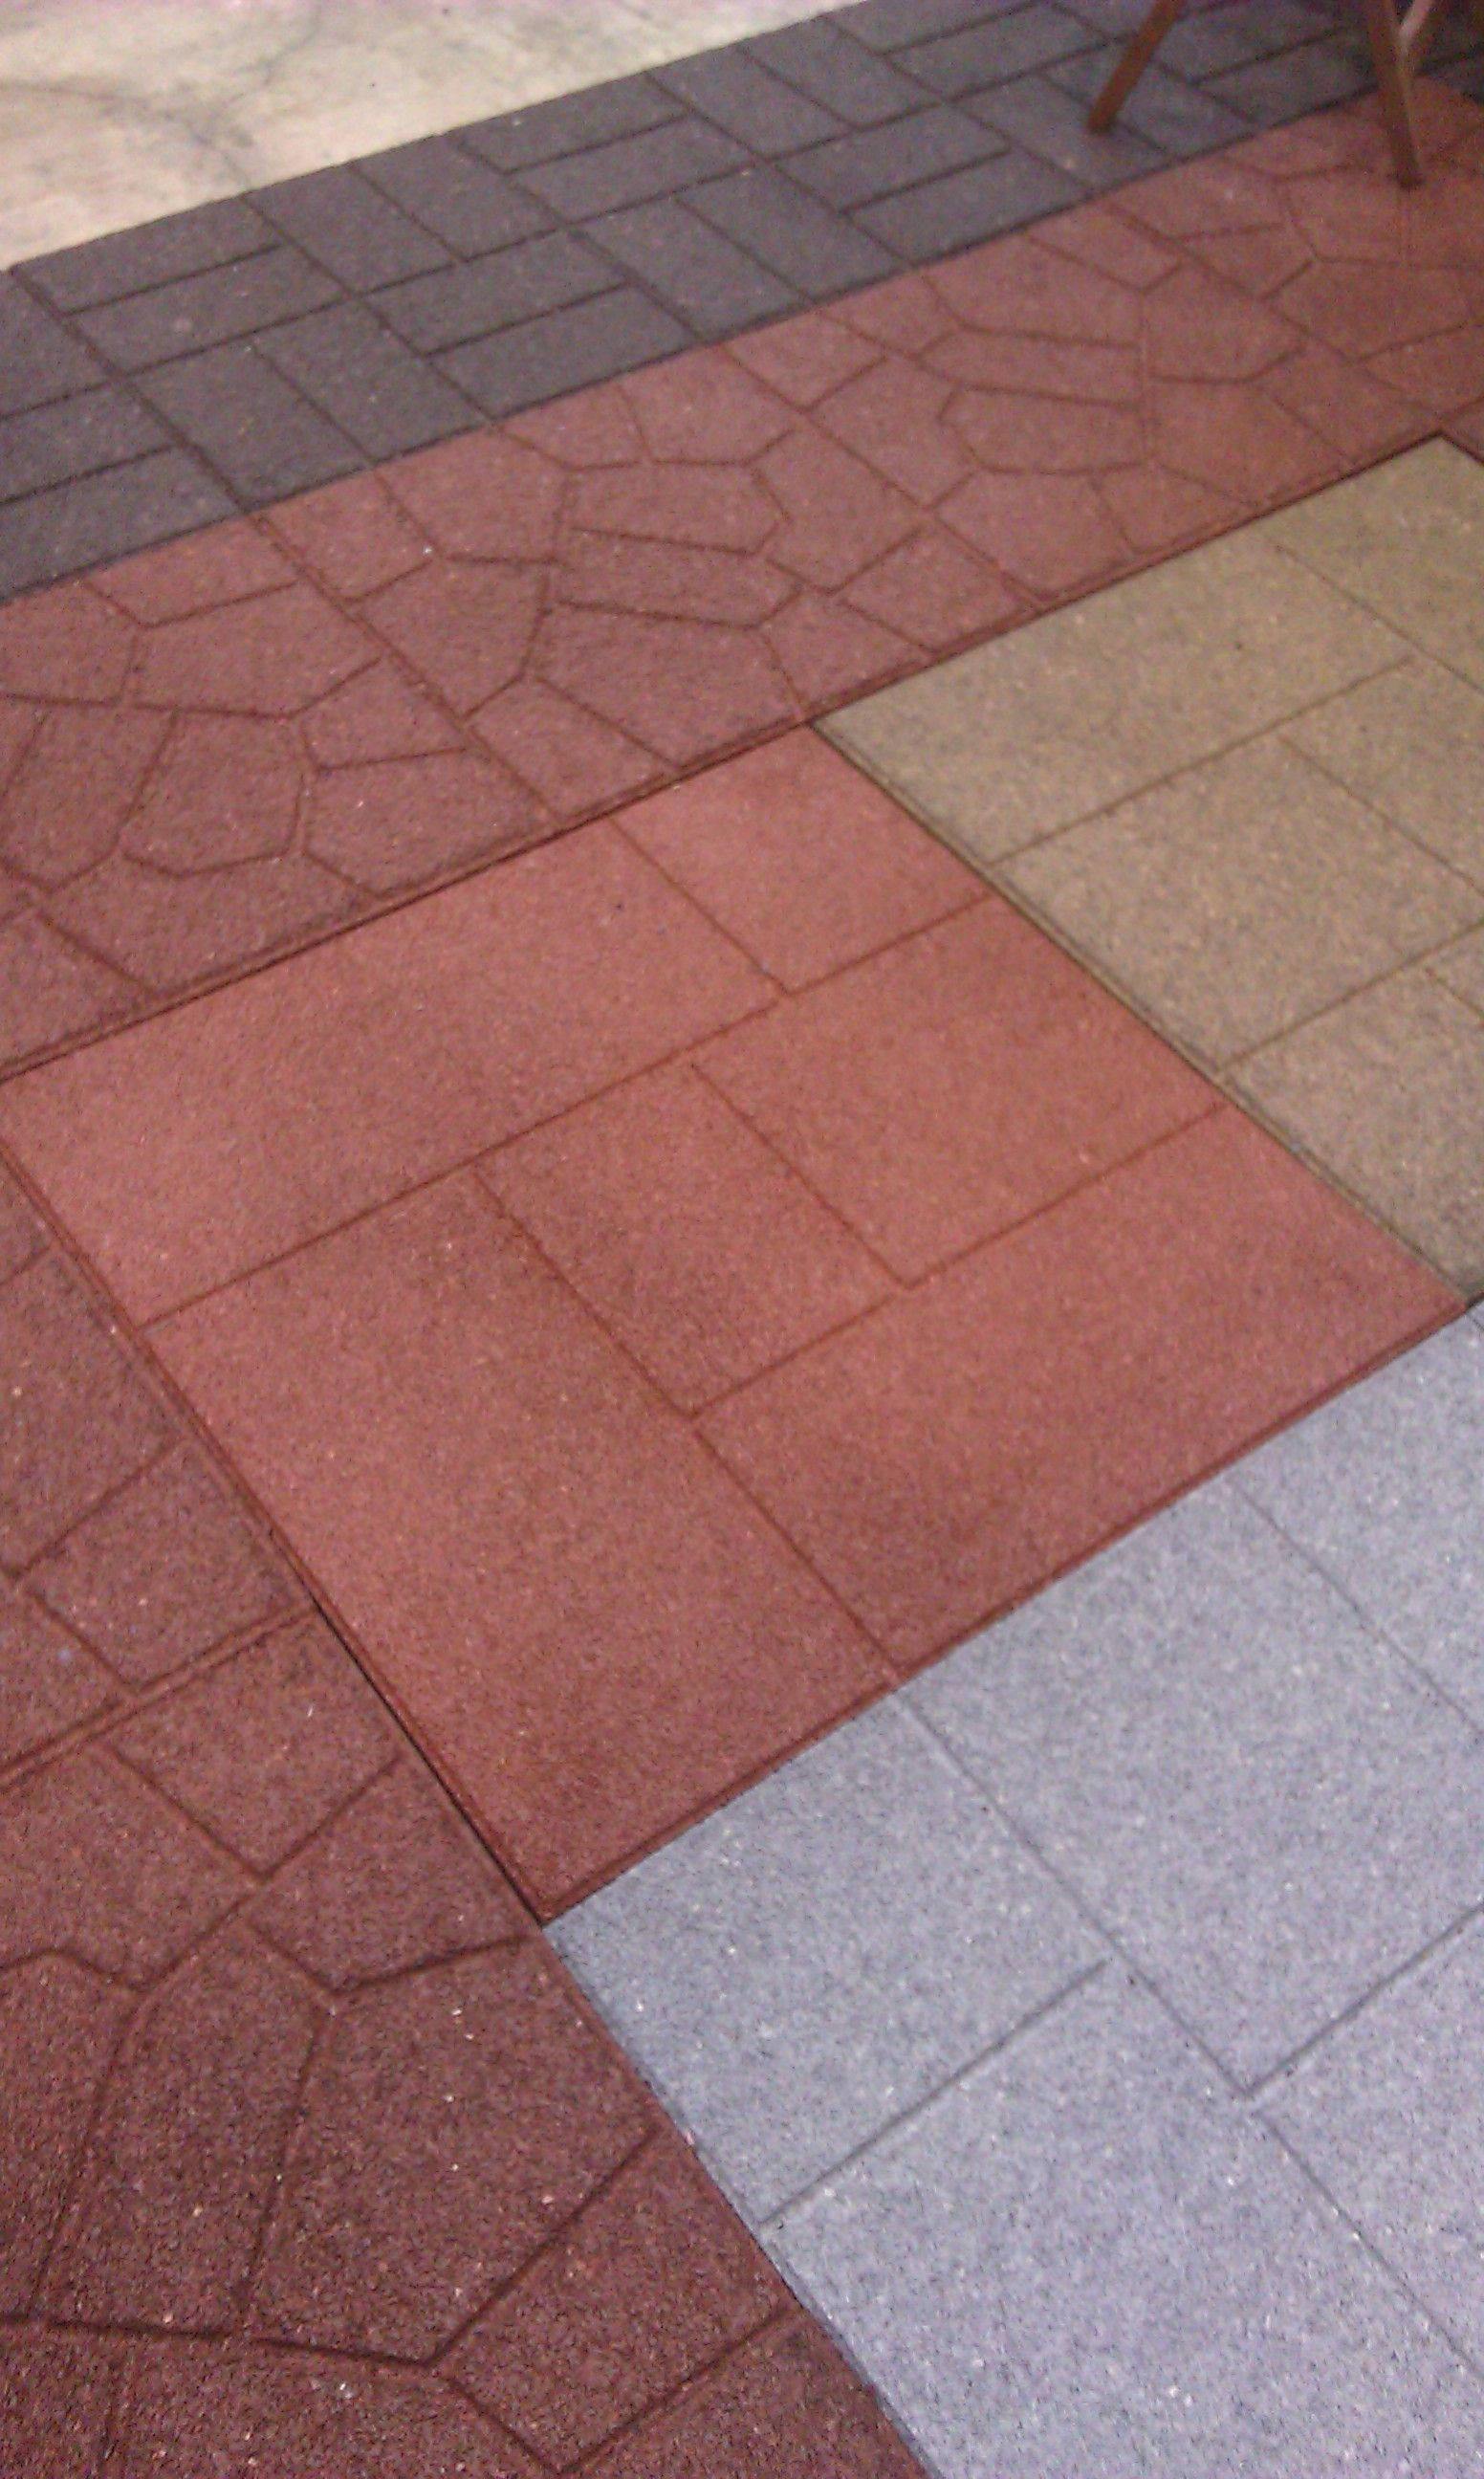 100% recycled rubber flooring tiles add long lasting beauty to an